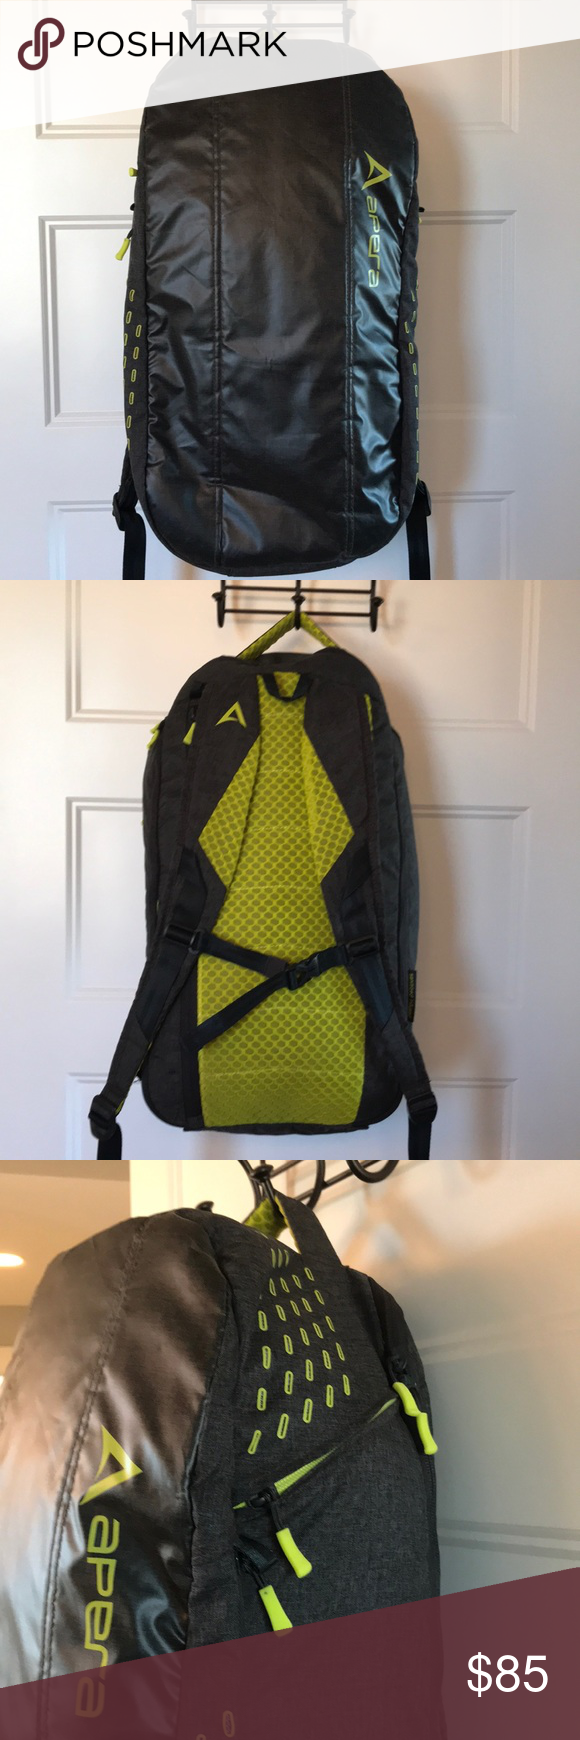 Apera Locker Pack backpack back laptop travel gray Gray and a lime  yellowish color. Great 3473772a48b29